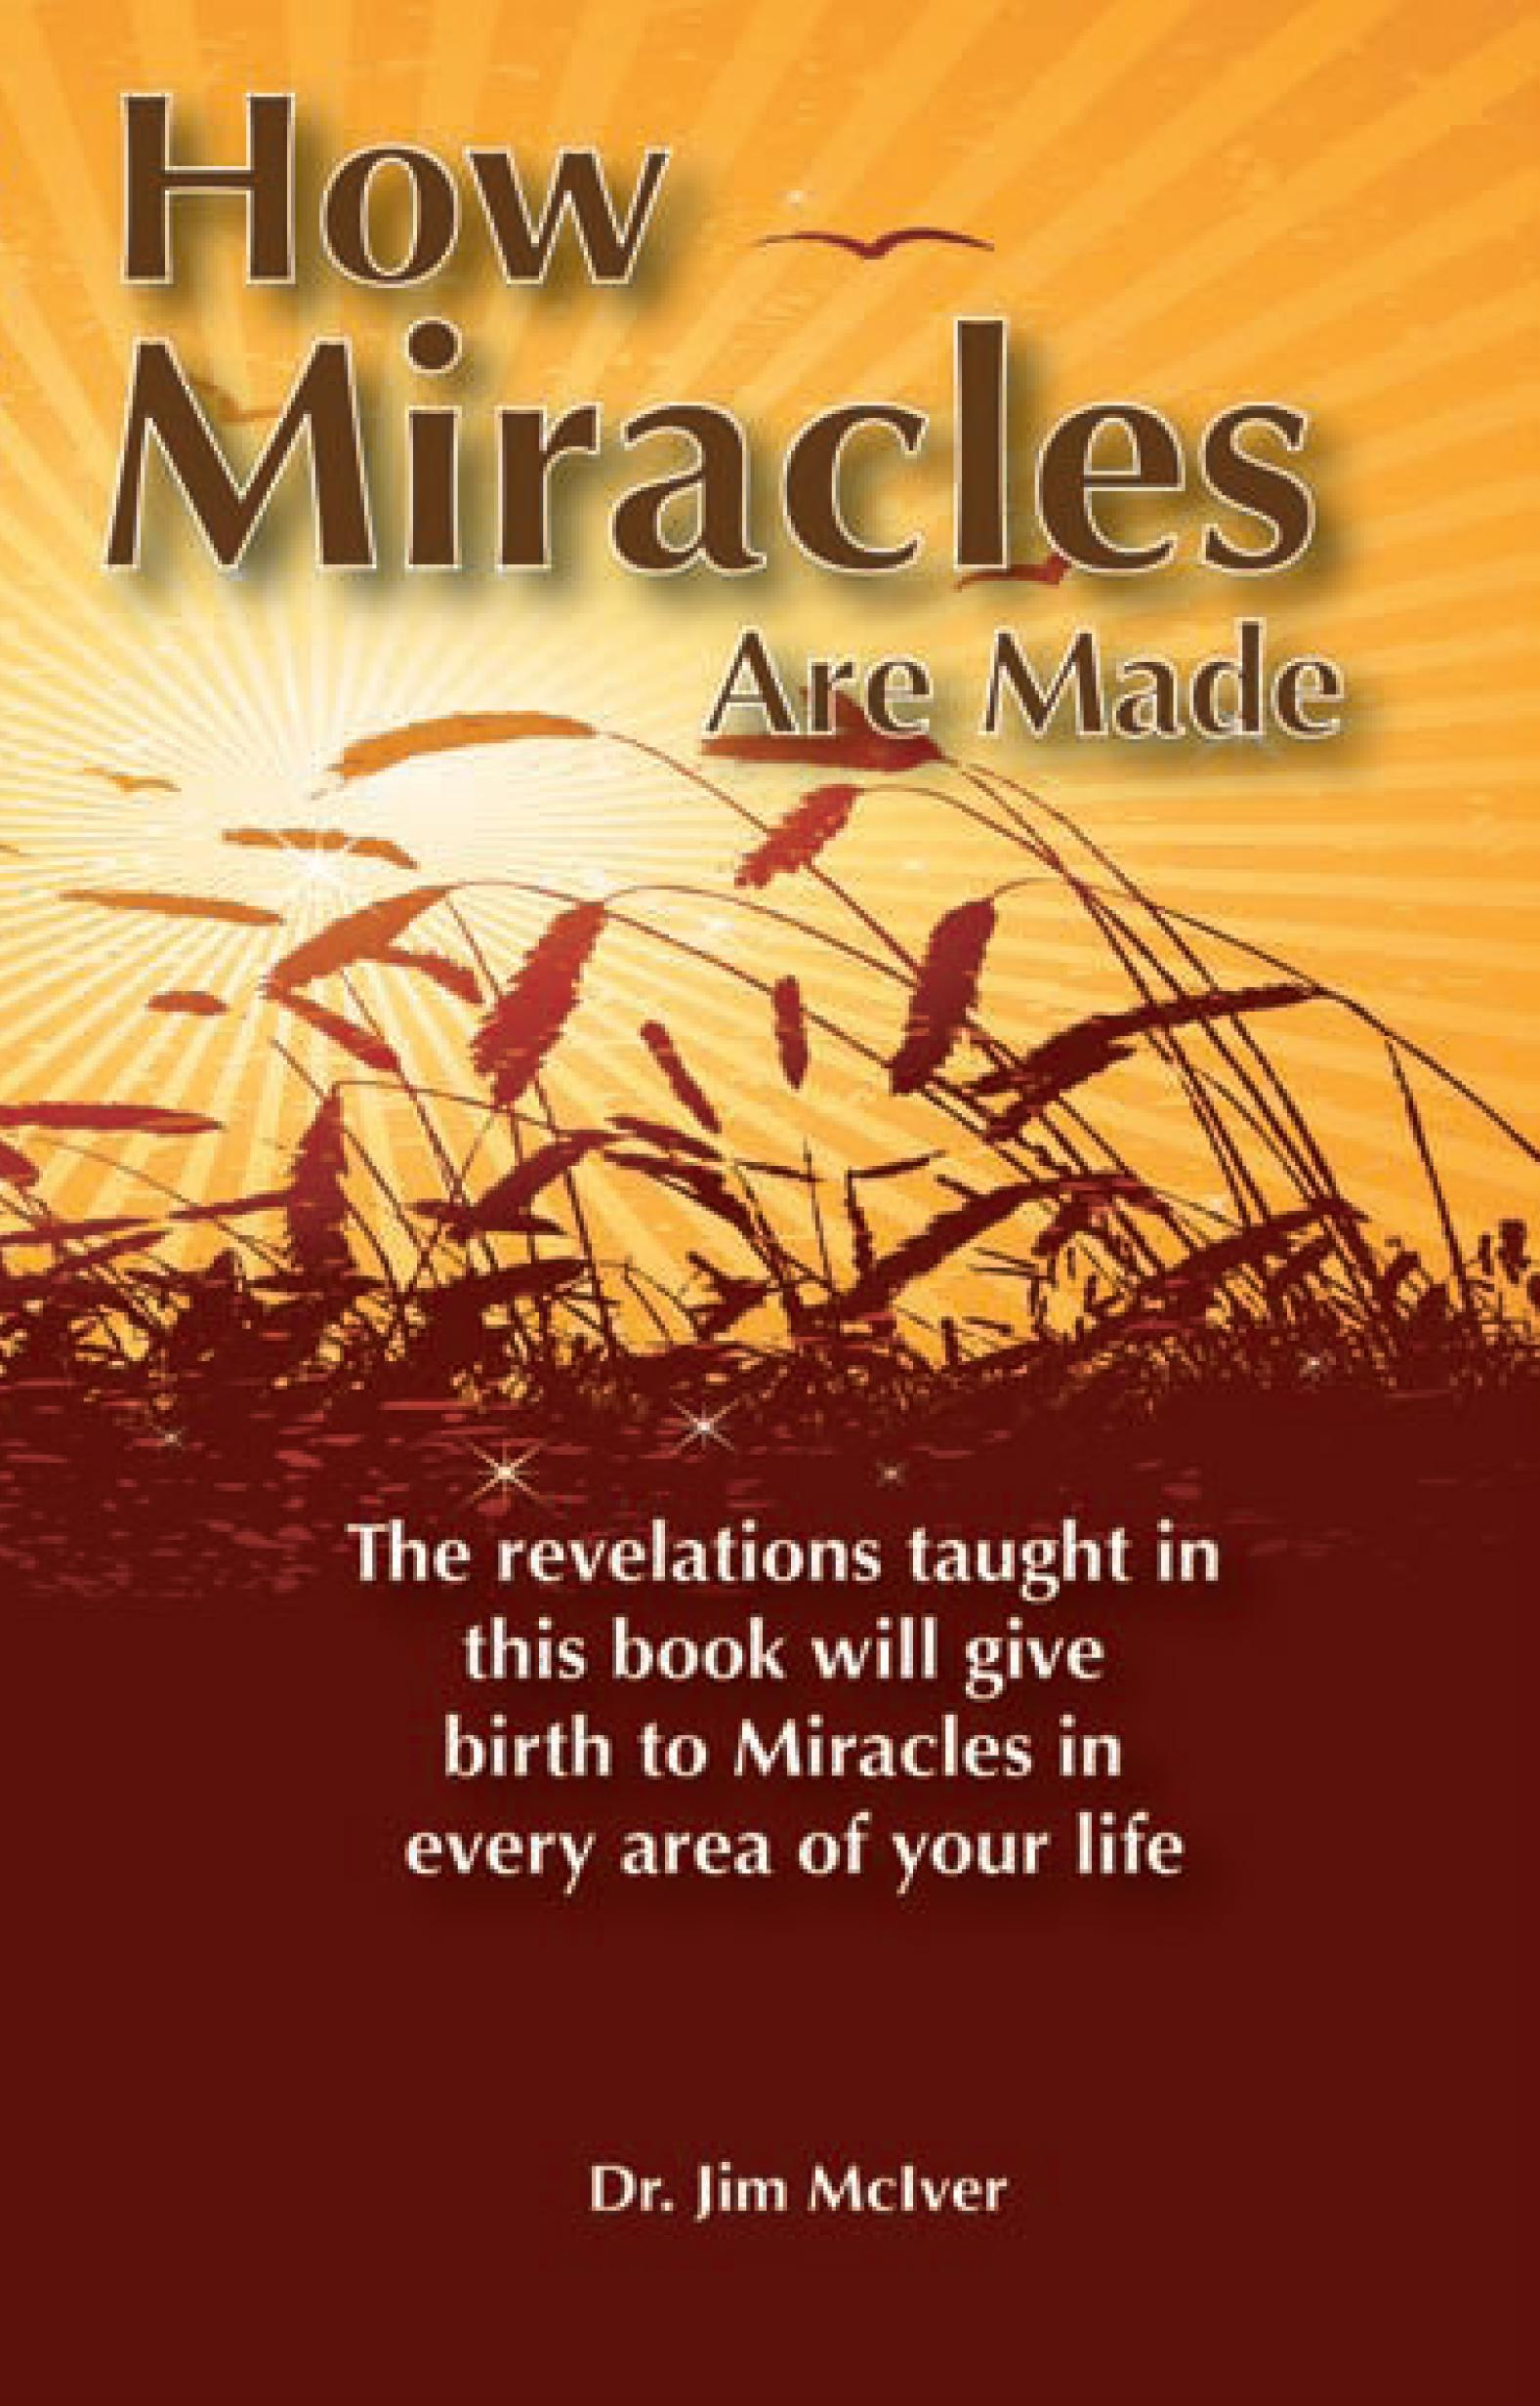 How Miracles Are Made